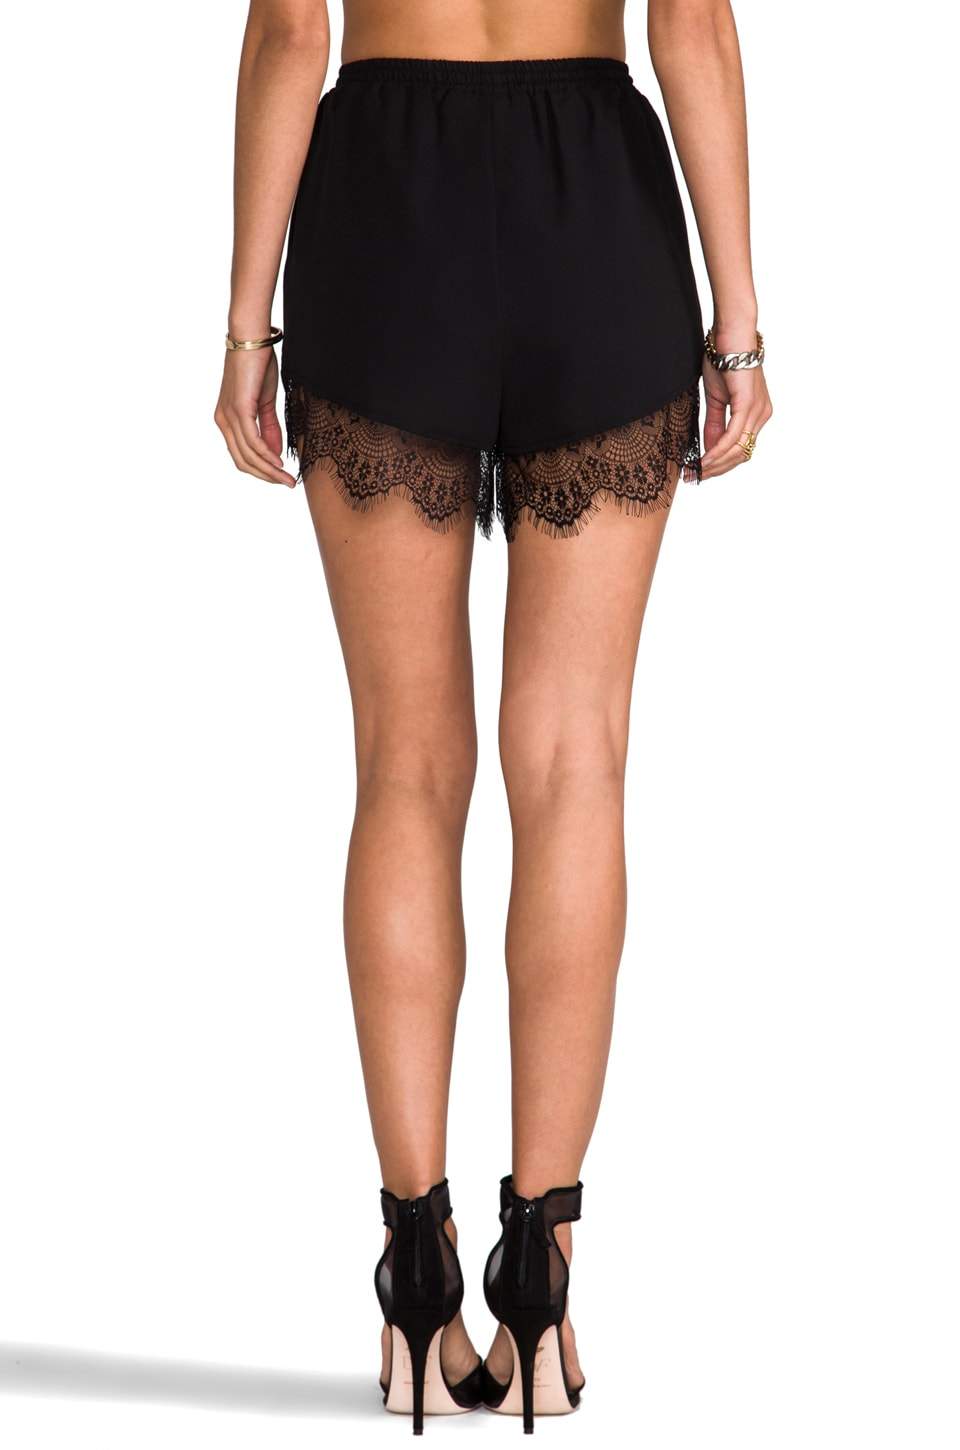 Finders Keepers Firehouse Short in Black